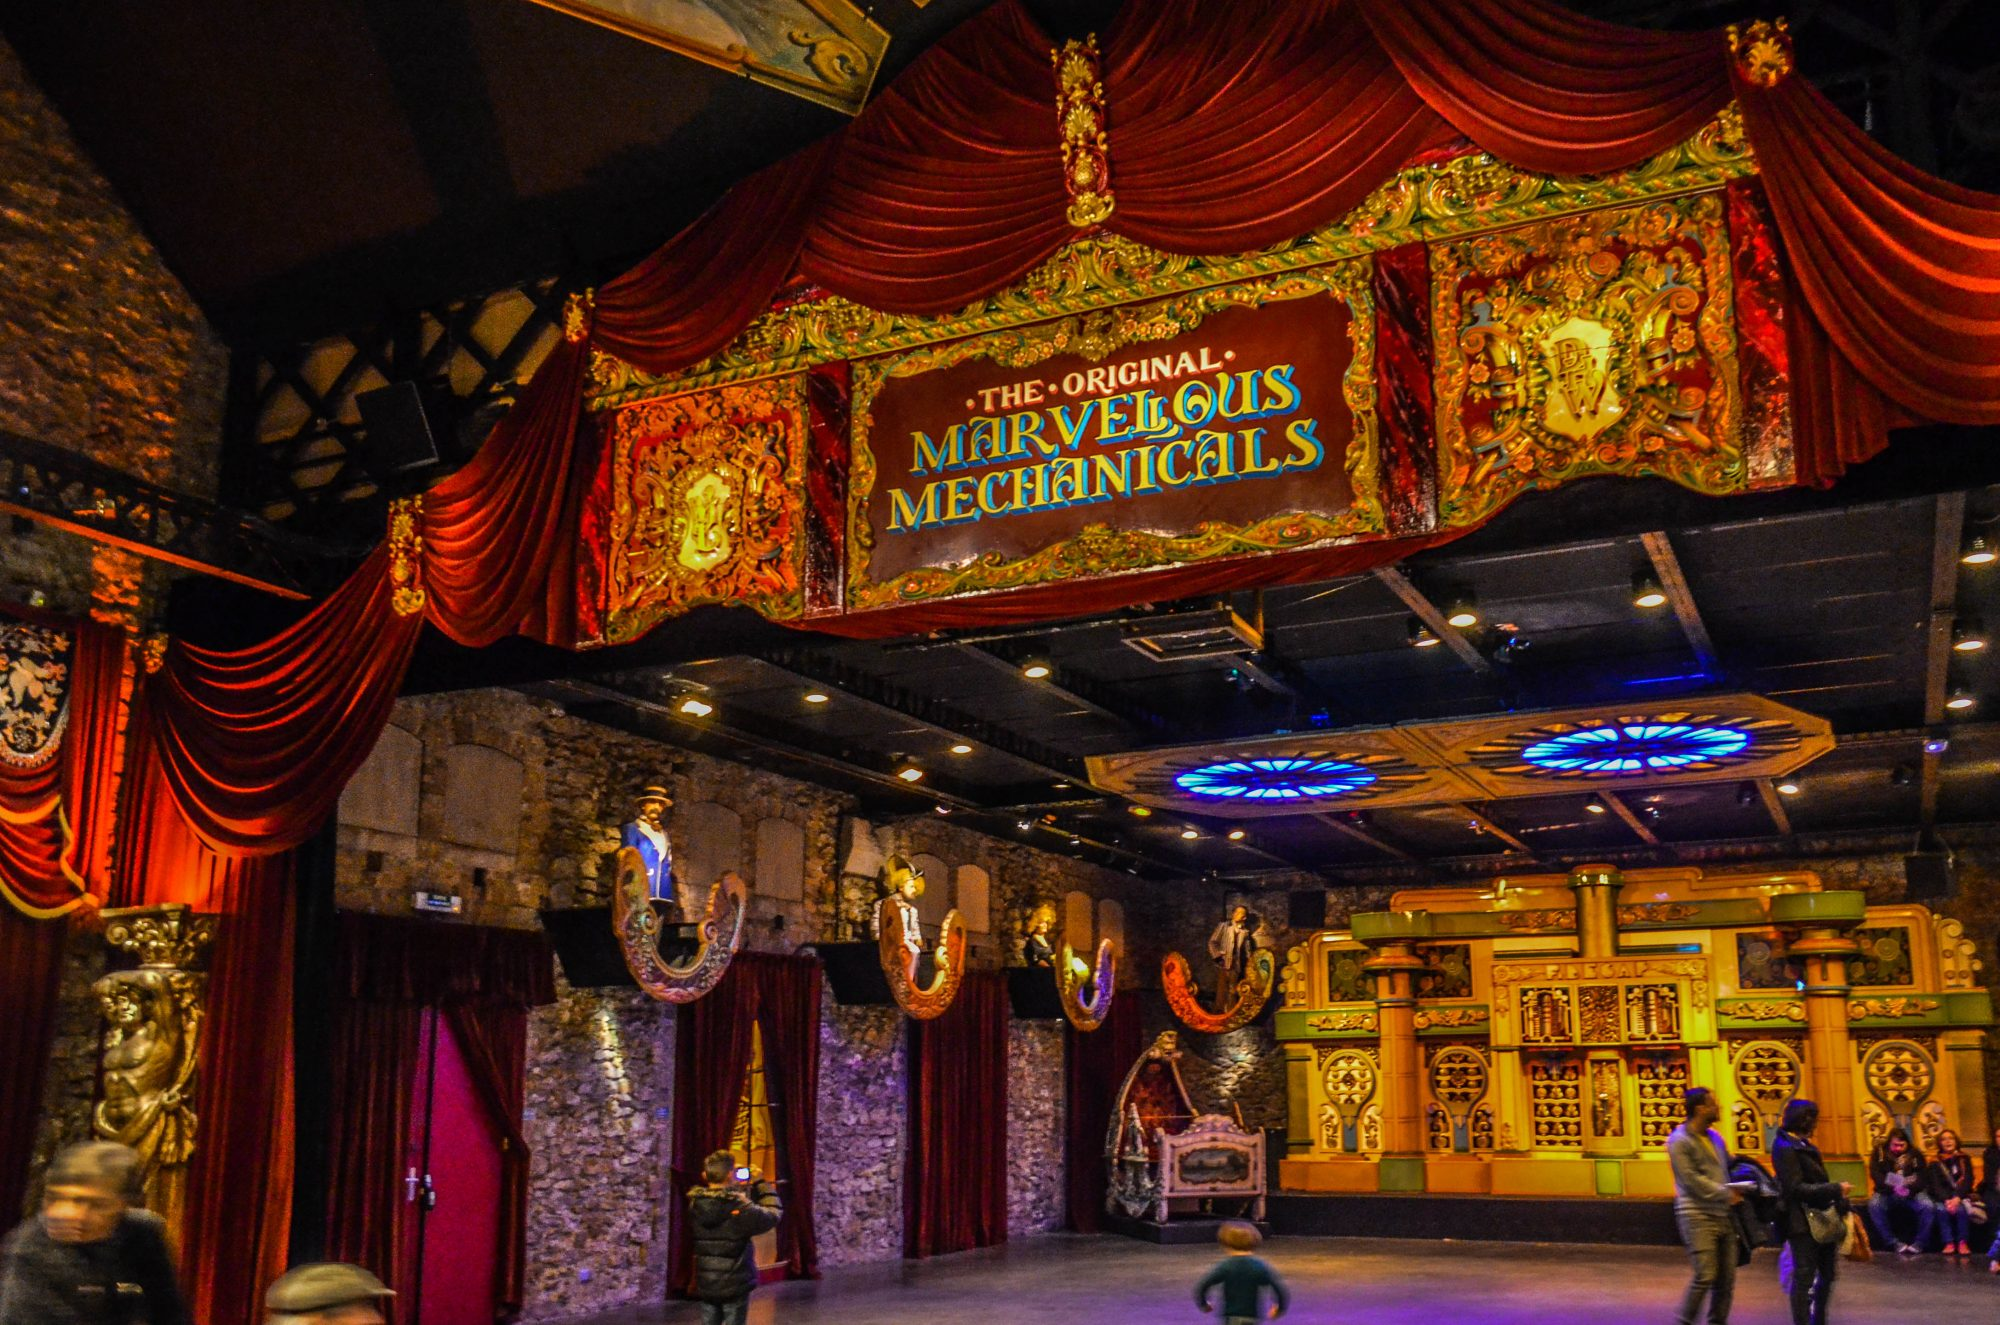 Marvelous Mechanicals - Musée des Arts Forains